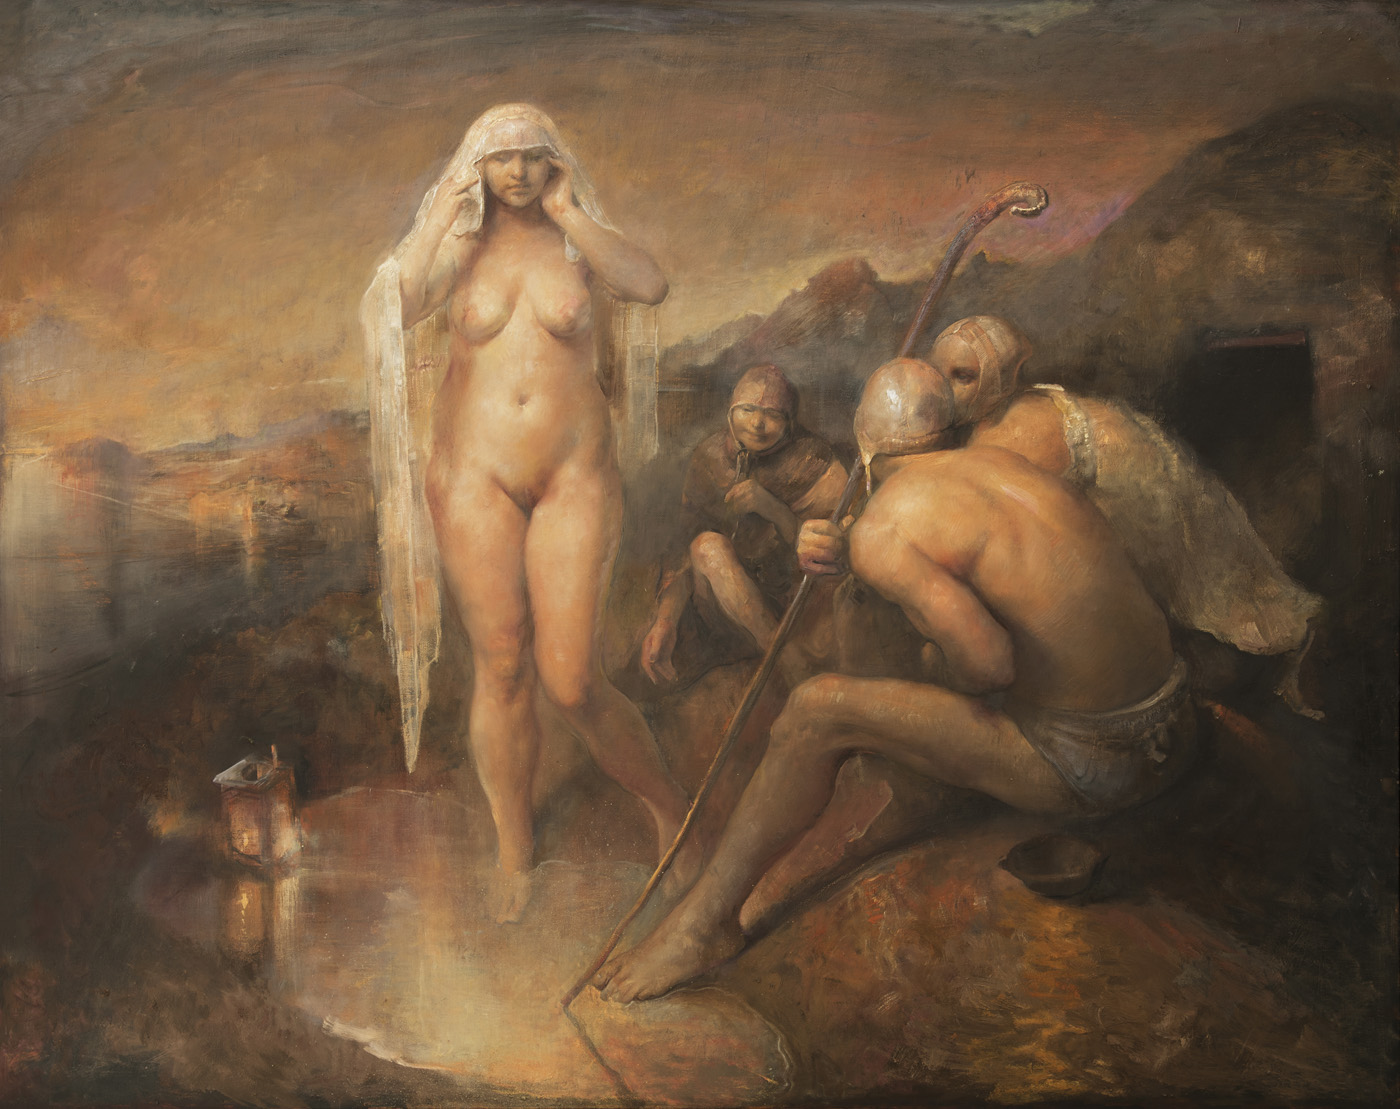 Одд Нердрум (Odd Nerdrum). Современное искусство Скандинавии, Норвегии. Look at my Beauty